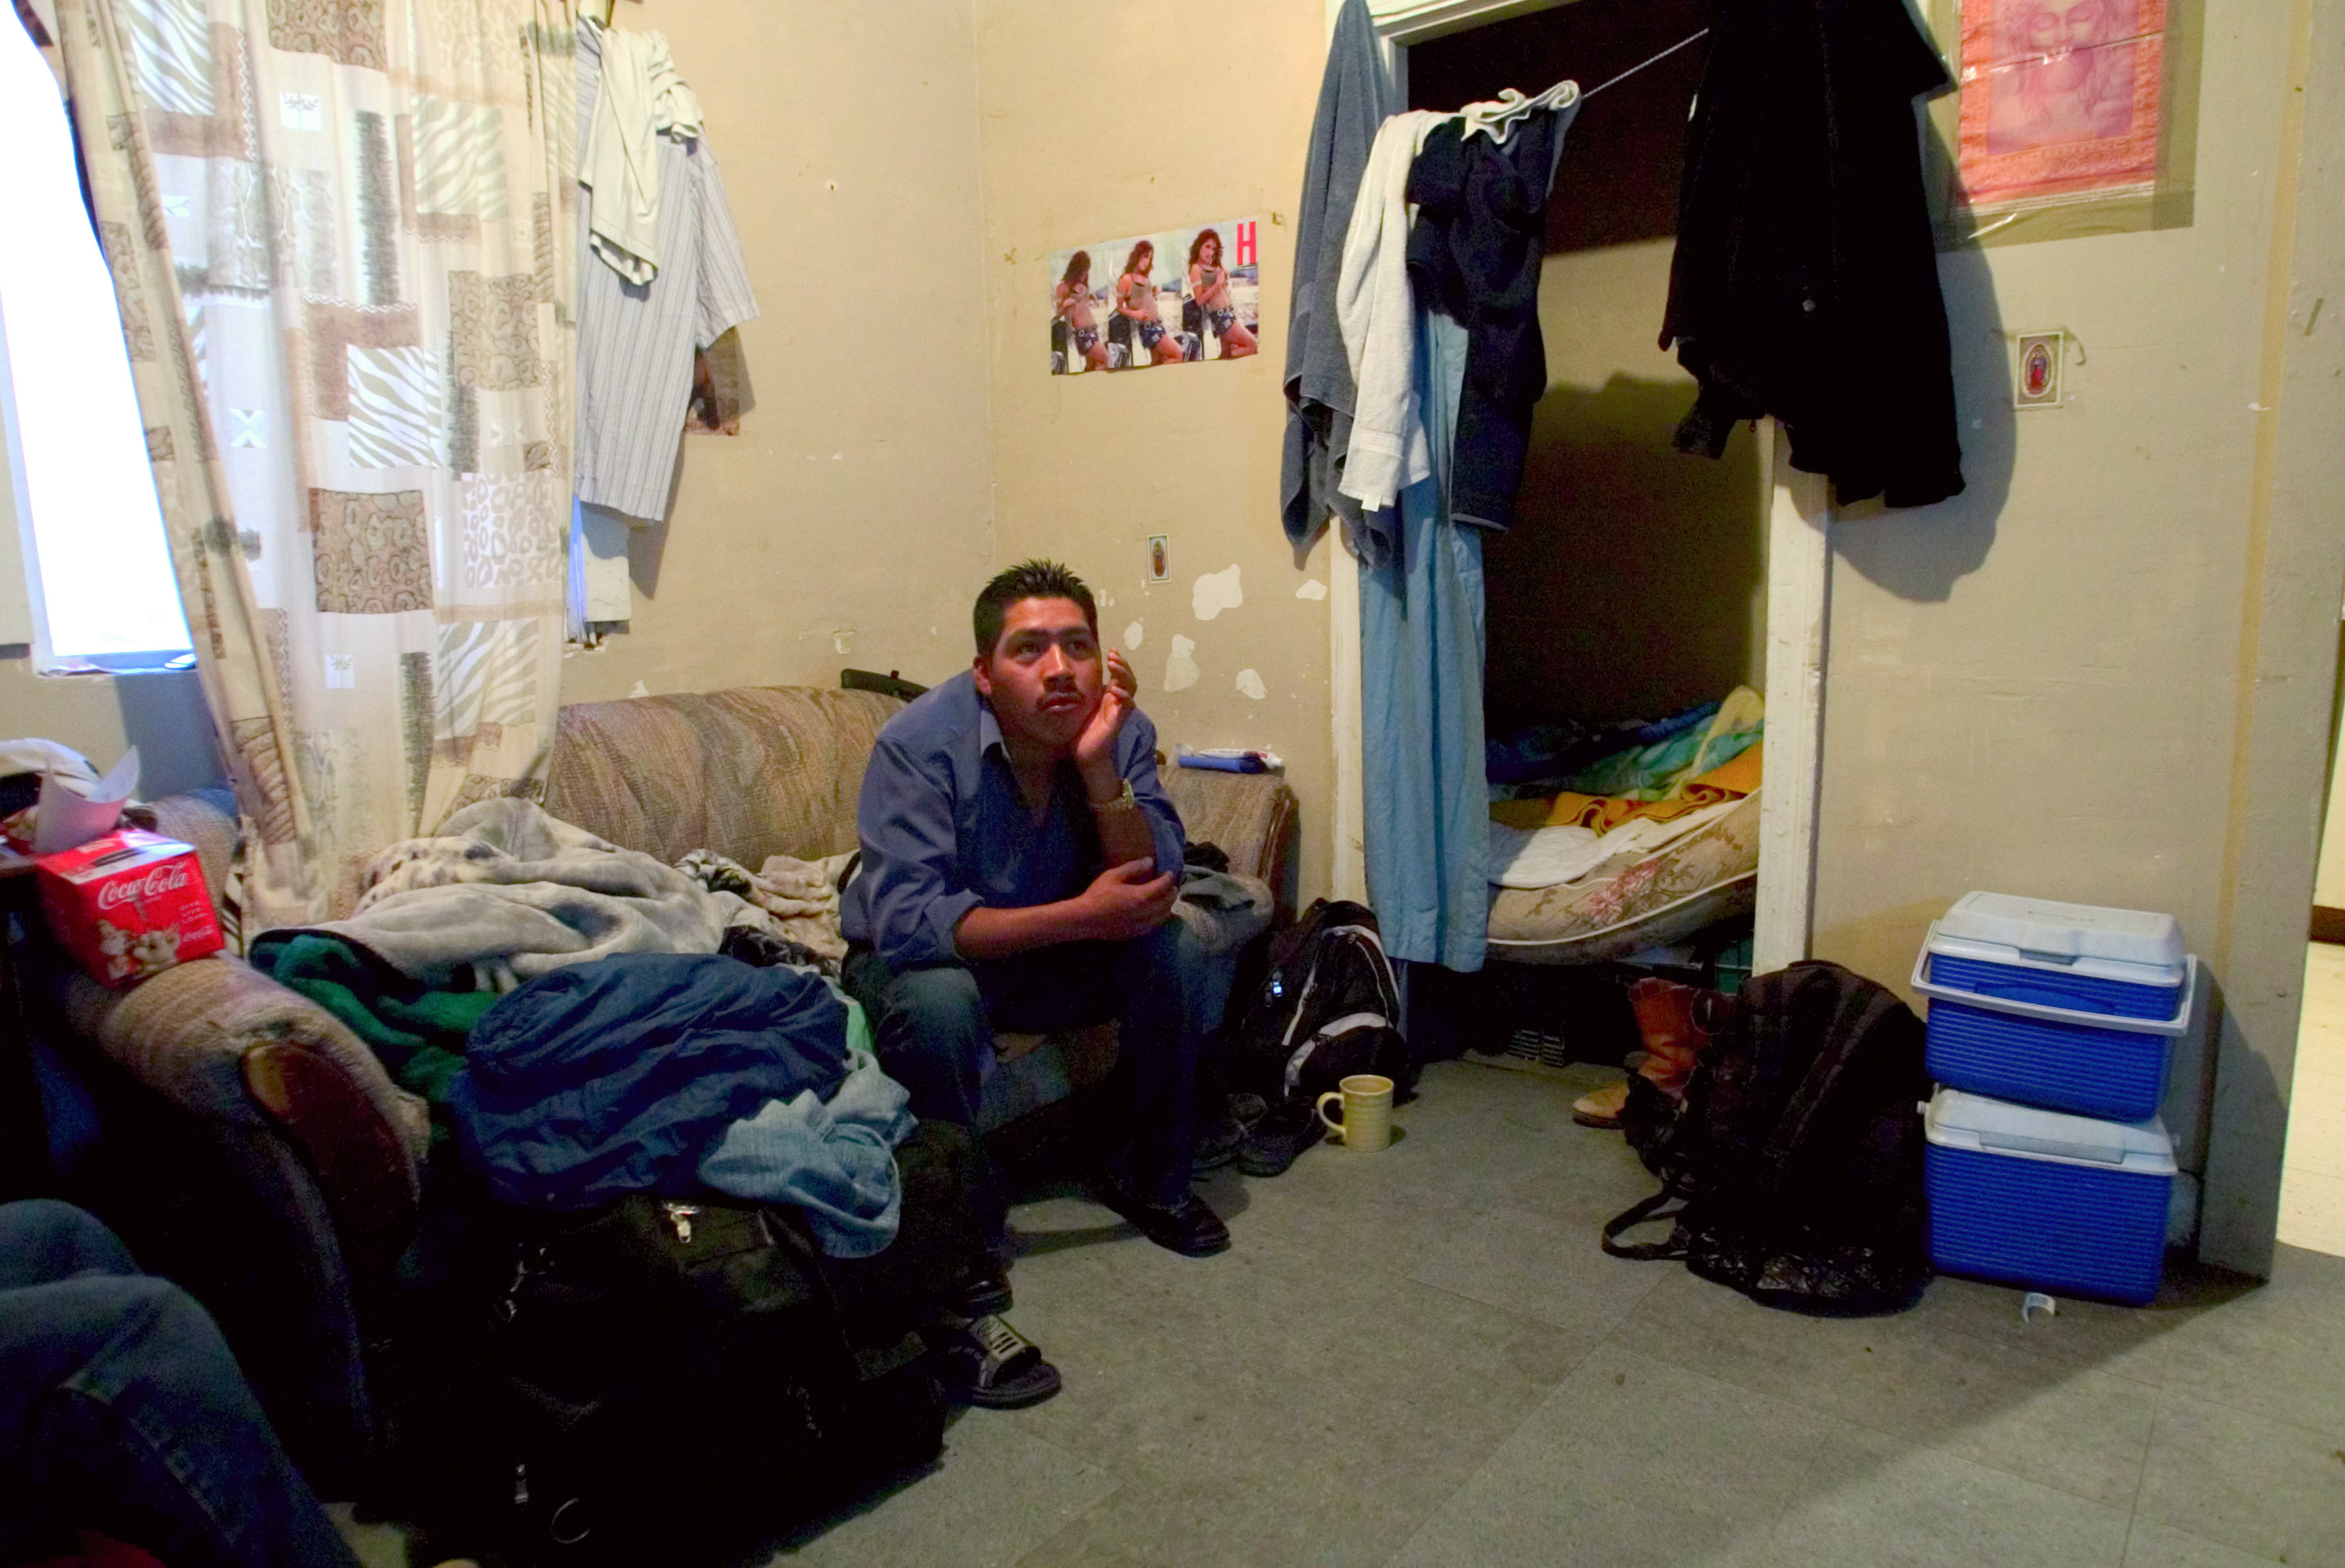 A man who goes by Rigo, sits in his room in Huron, California. 2007